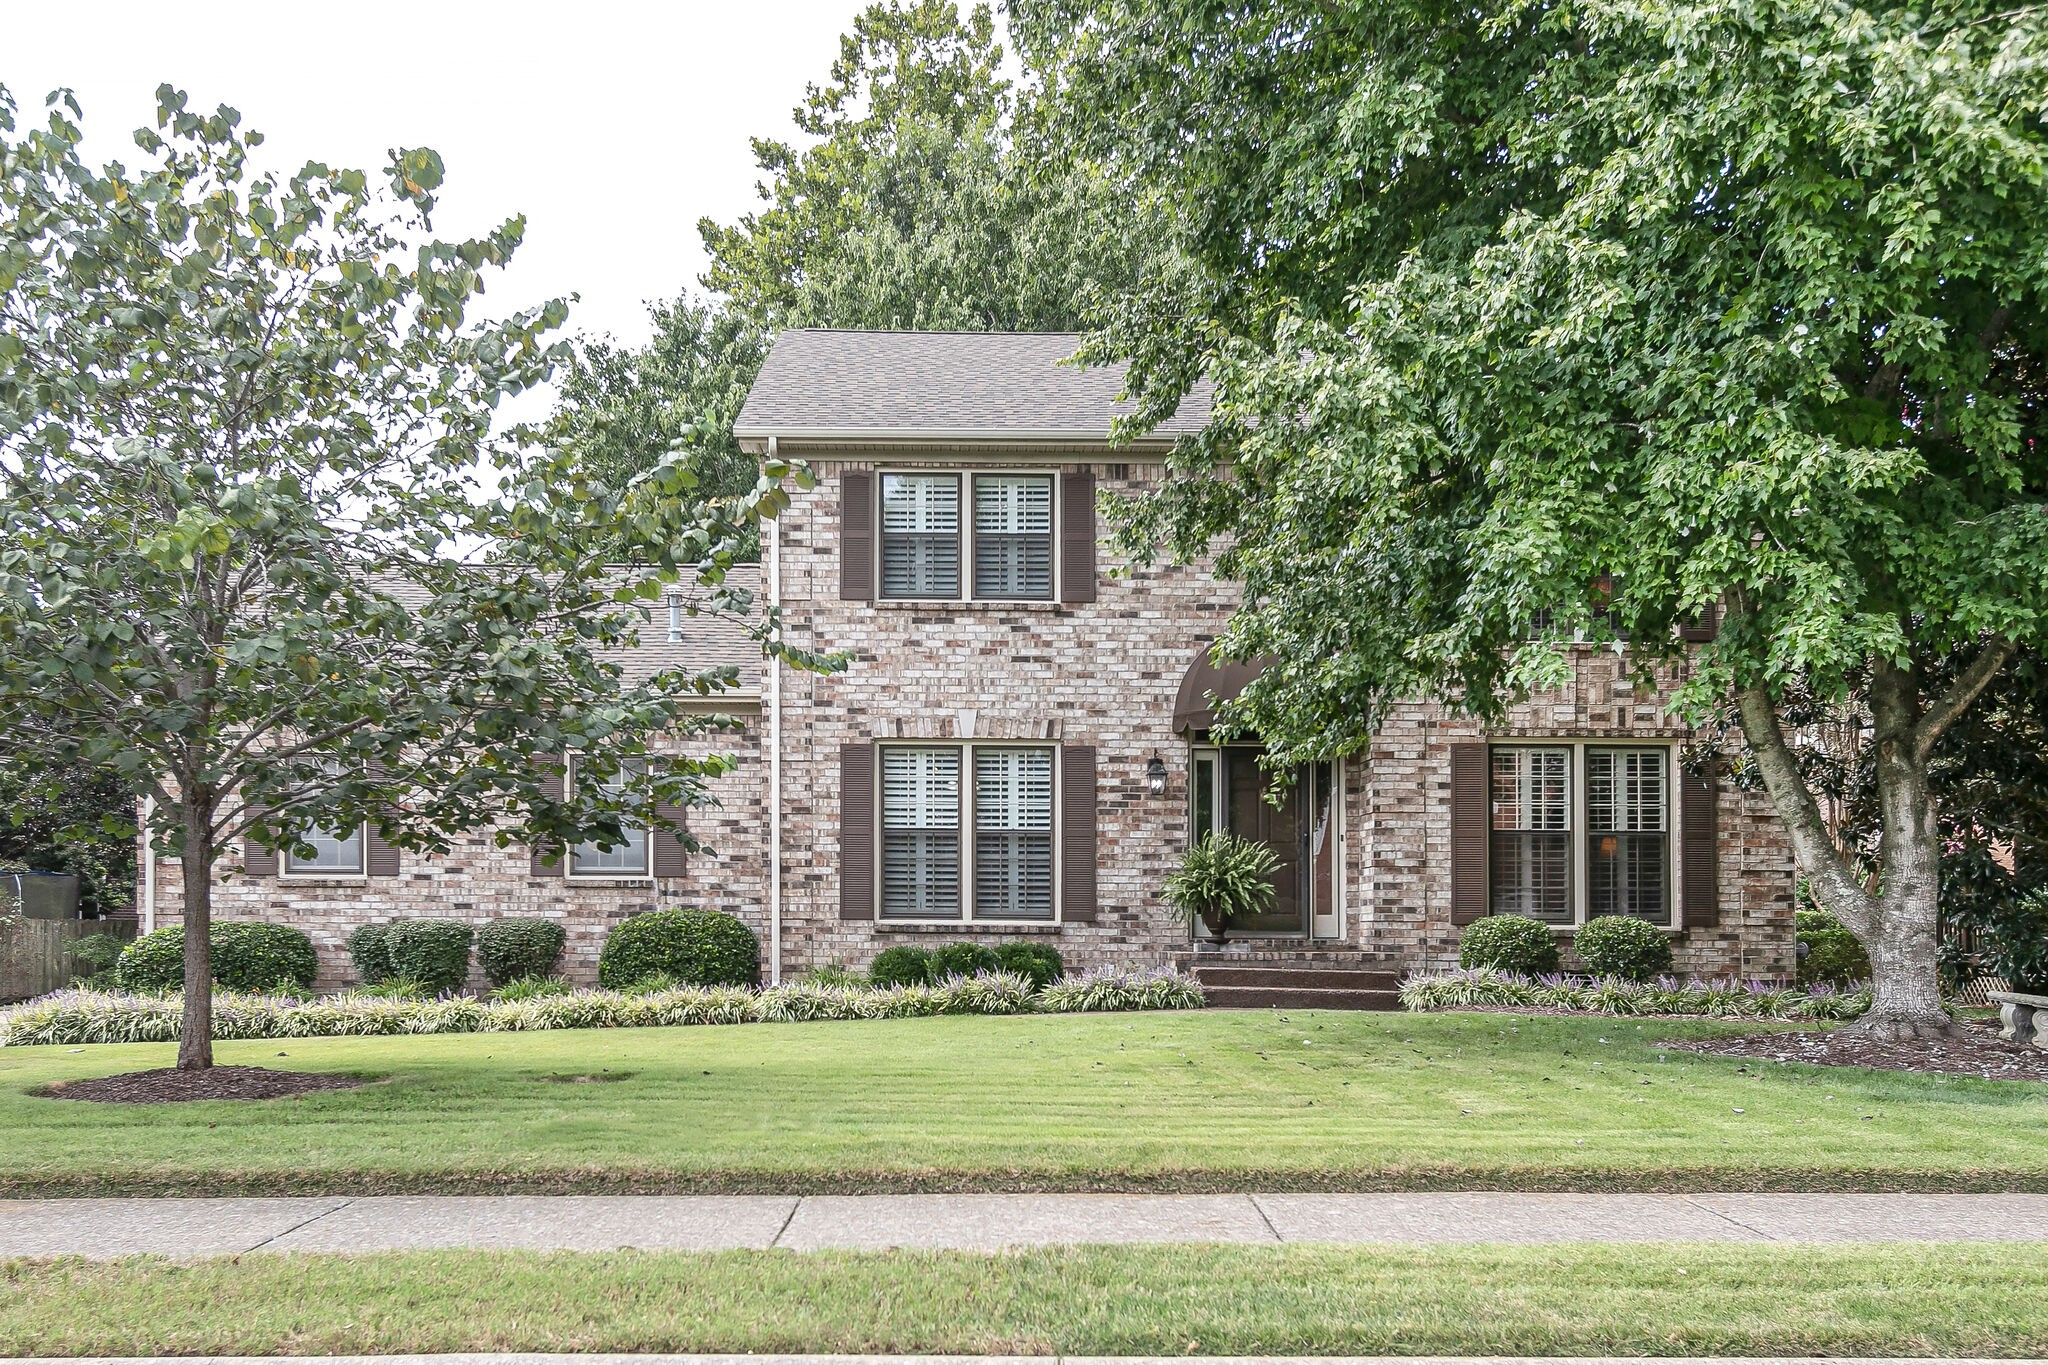 Plenty of space to live, work and play in this immaculate & updated 4-sides brick, 4 bed home in popular Ralston Glen.  Formal living/home office, dining + breakfast, den w/FP, stunning & spacious master + 3,  huge bonus room, side-entry garage with level driveway, tranquil backyard w/covered deck.  Roof 5 yrs, new H20 heater, HVAC's 1yr, 4 & 5 yrs.  Walk to neighborhood pool, Pinkerton Park & Downtown Franklin dining, shopping & events. This home checks all the boxes!  First showings  Fri 9/17